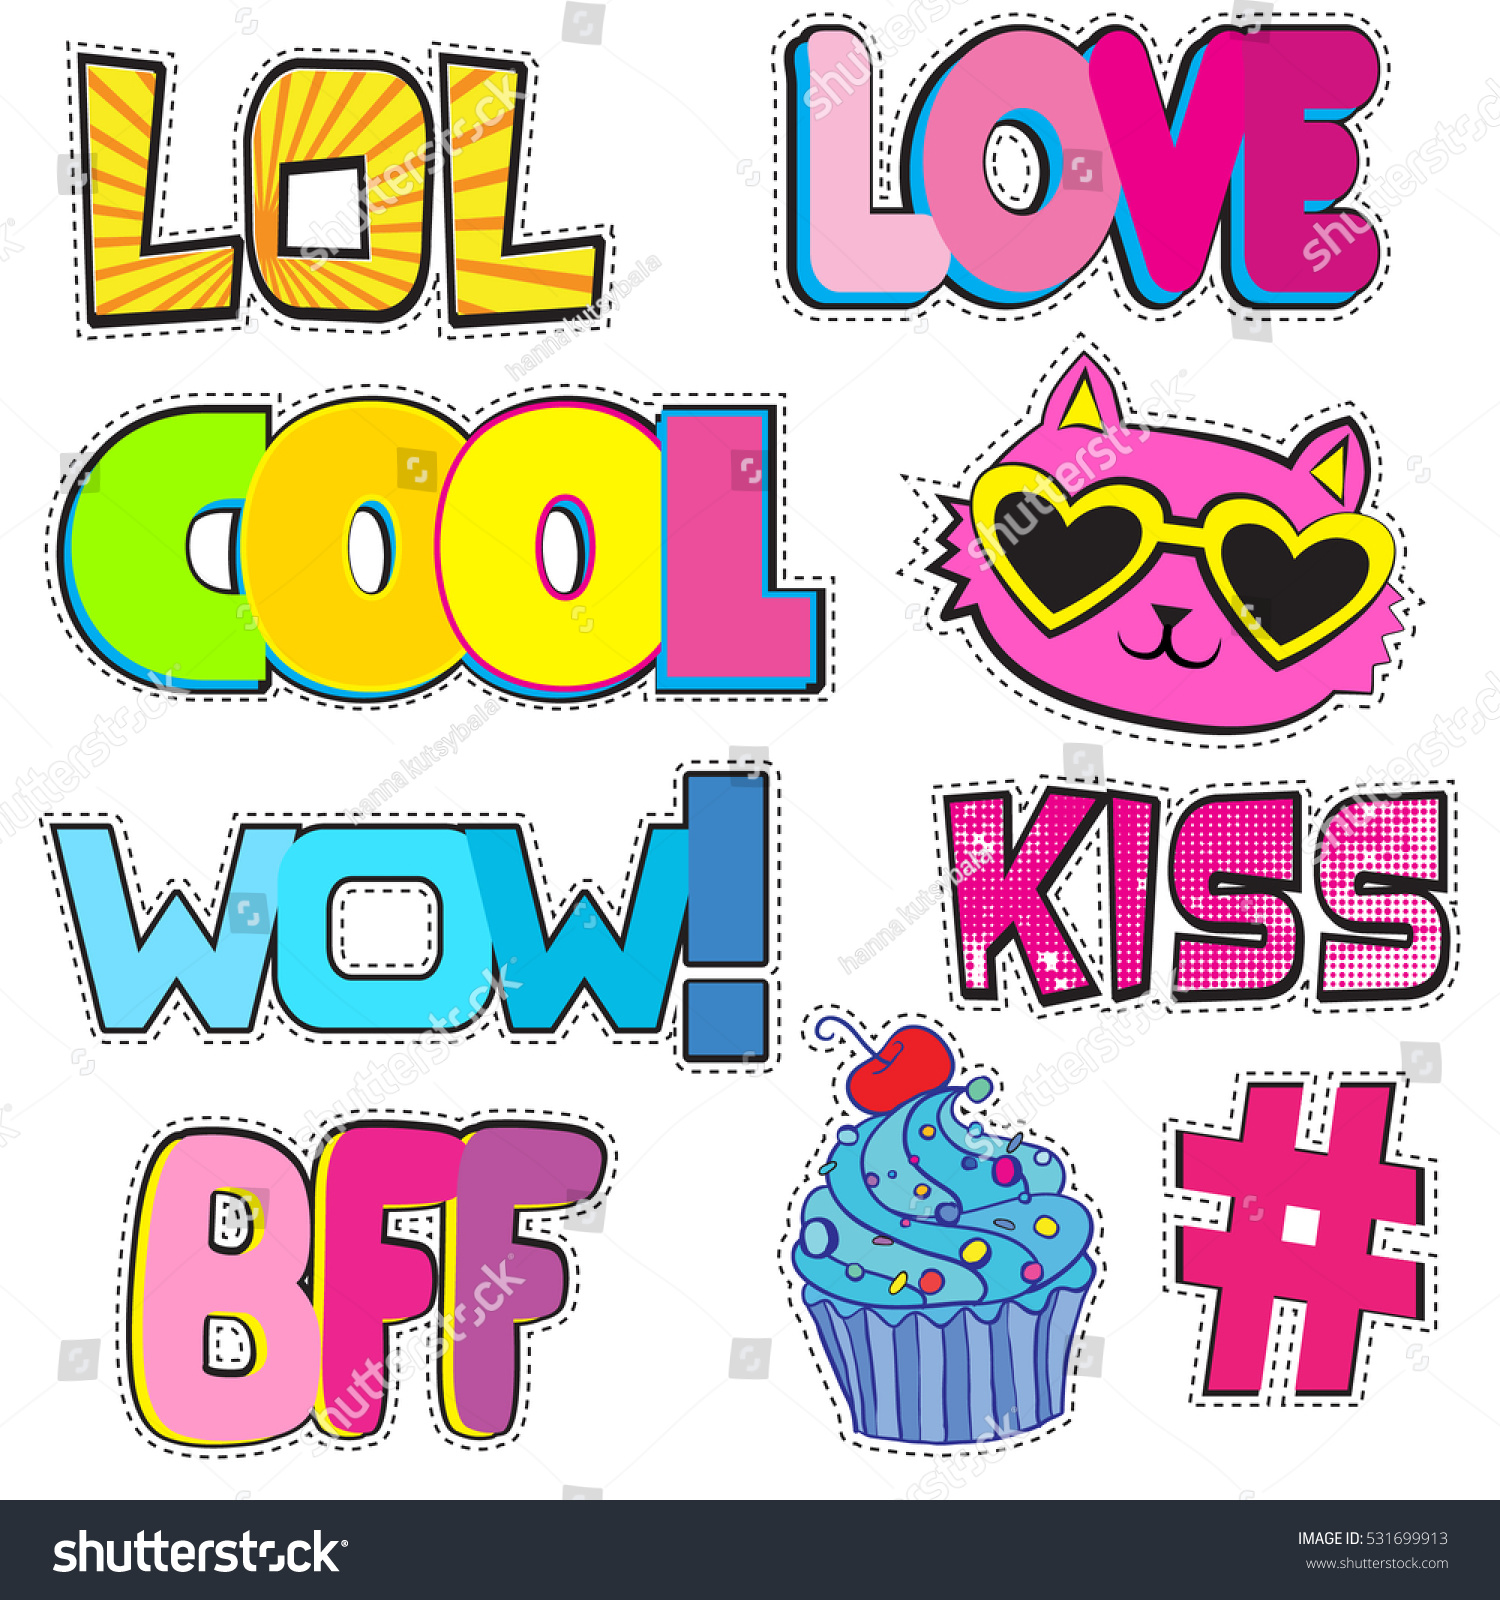 Set of cute stickers with hashtags elements wow love lol kiss cool